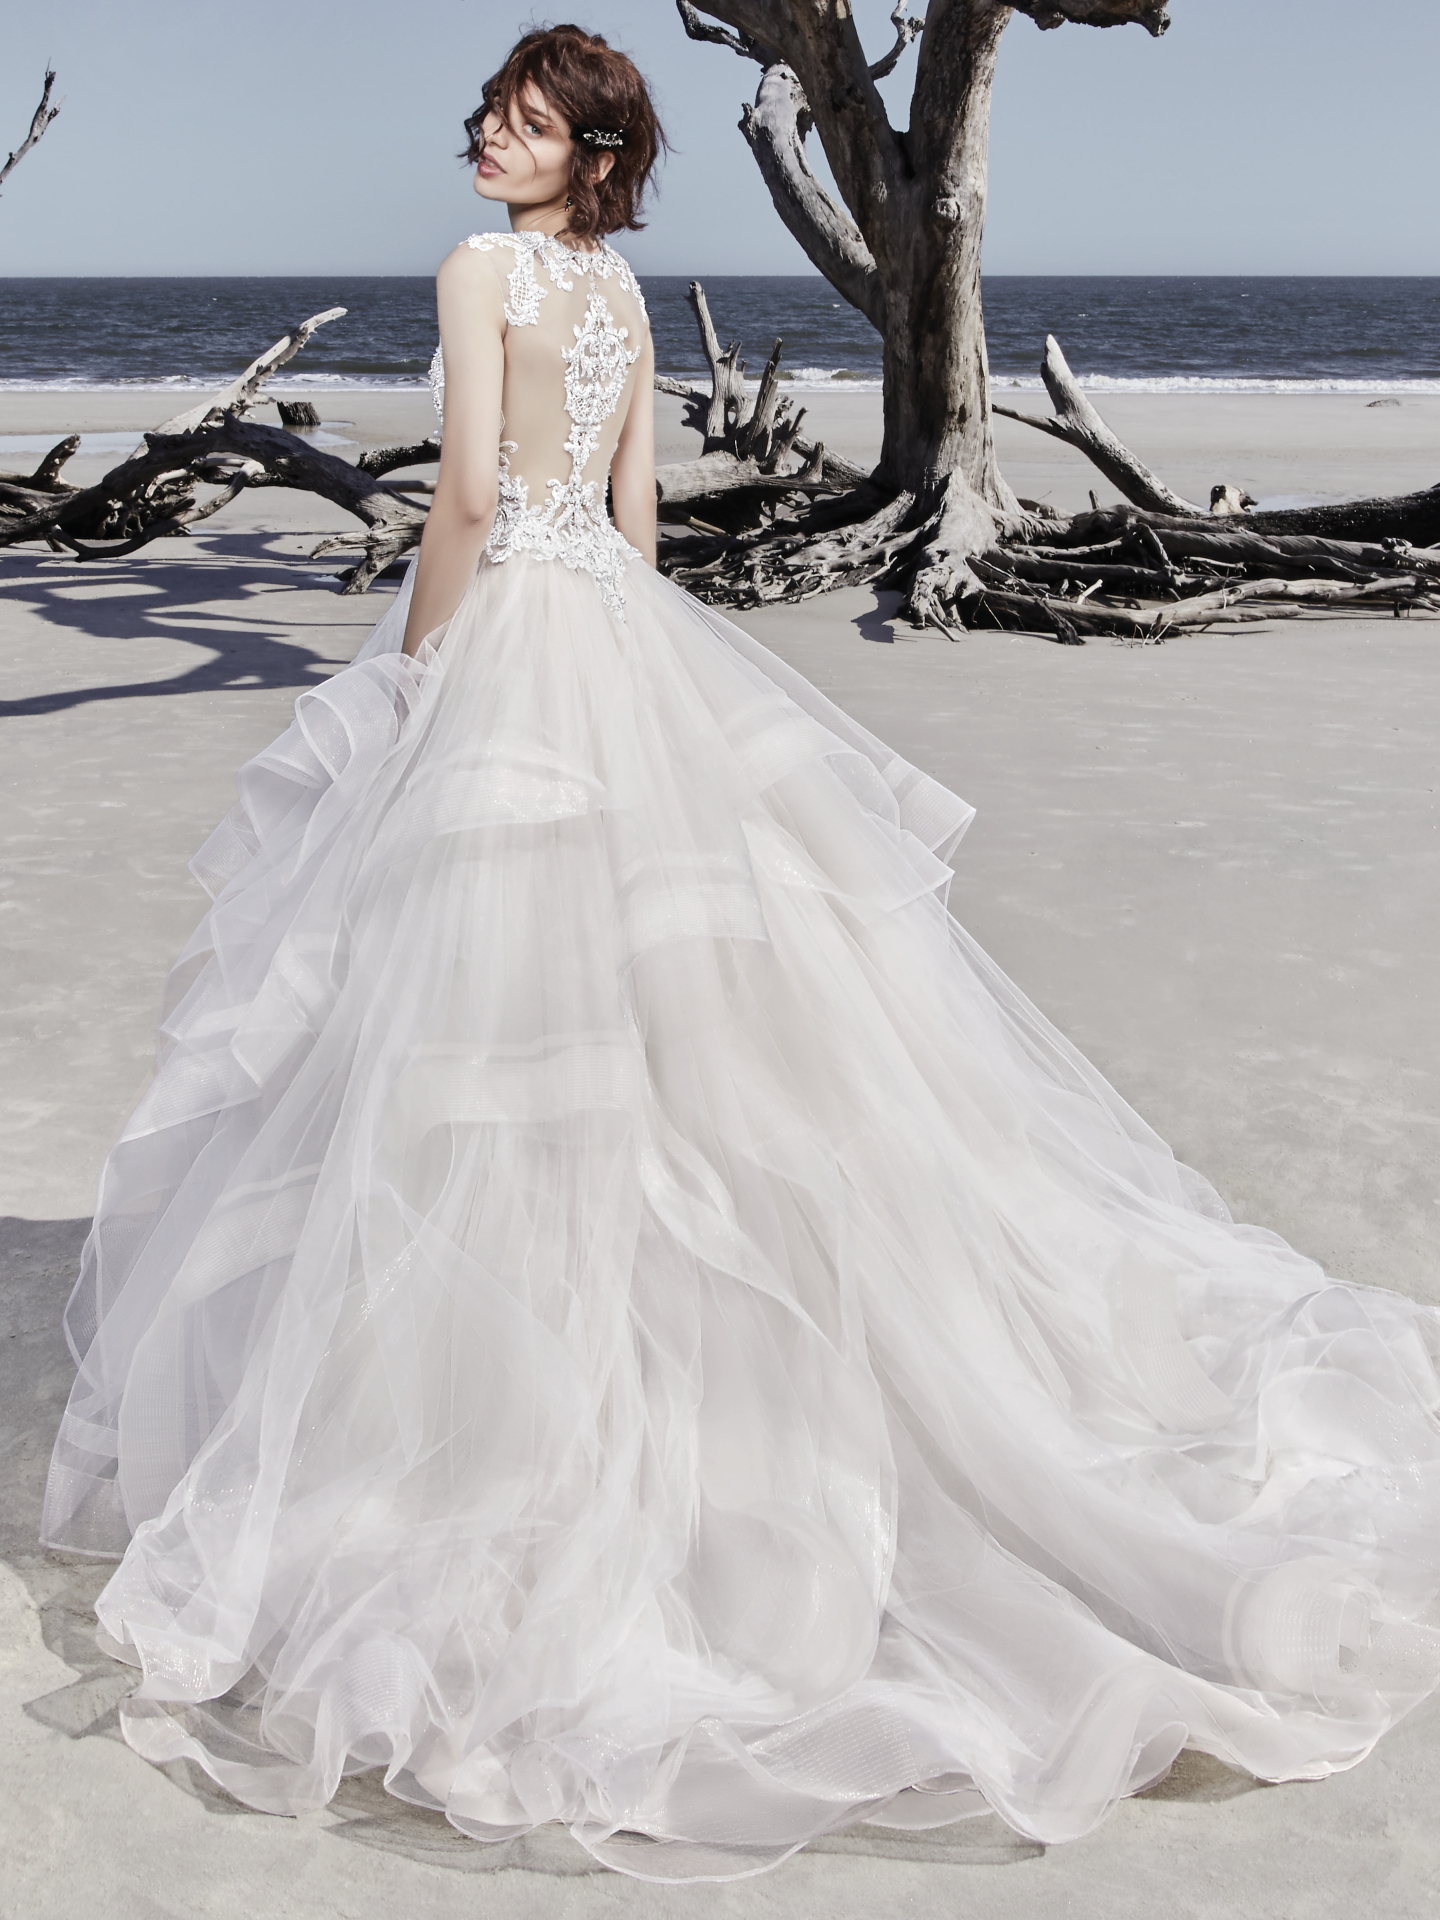 Ariya by Sottero and Midgley. This modern princess ballgown features a beaded lace bodice, accented in Swarovski crystals, atop a tiered tulle skirt trimmed in horsehair. Beaded lace motifs complete the unique illusion jewel neckline and statement illusion back. Finished with crystal buttons and zipper closure. Princess Ballgowns For Royal Weddings